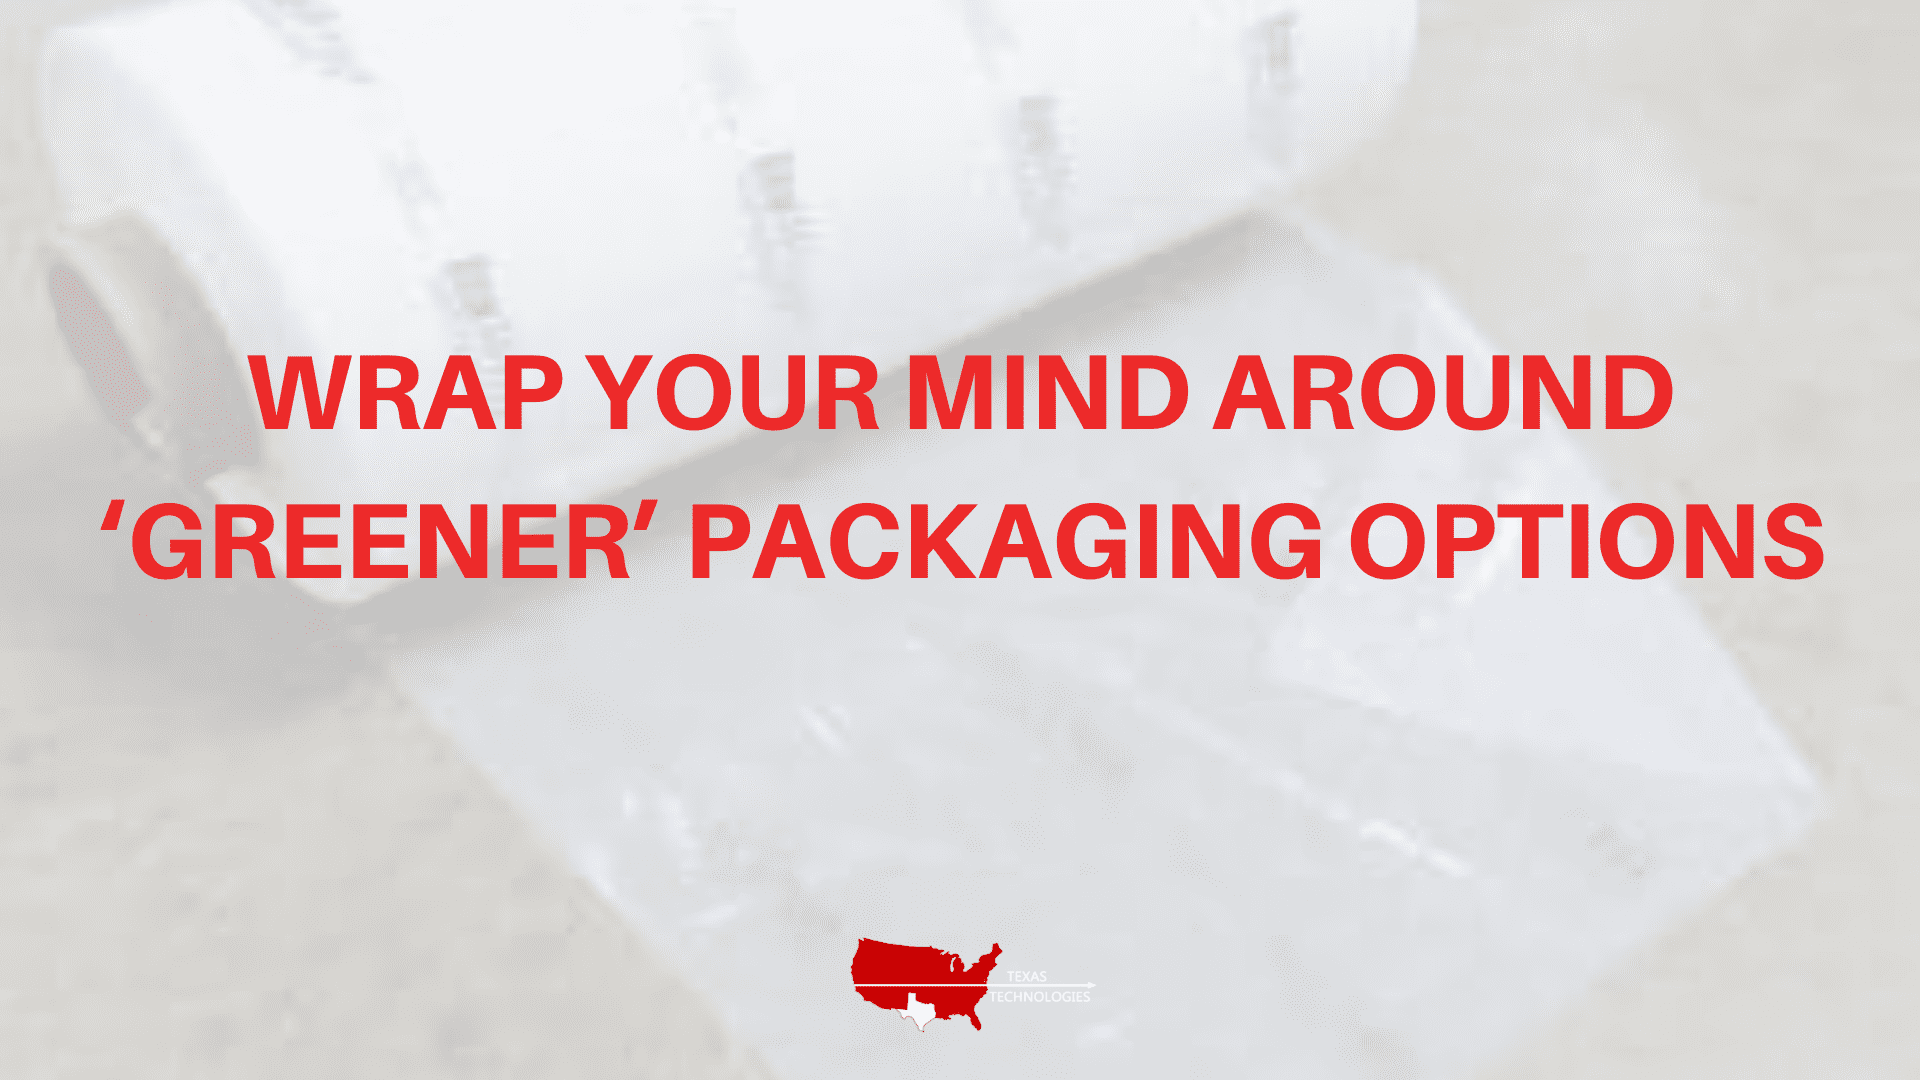 Wrap Your Mind Around 'Greener' Packaging Options